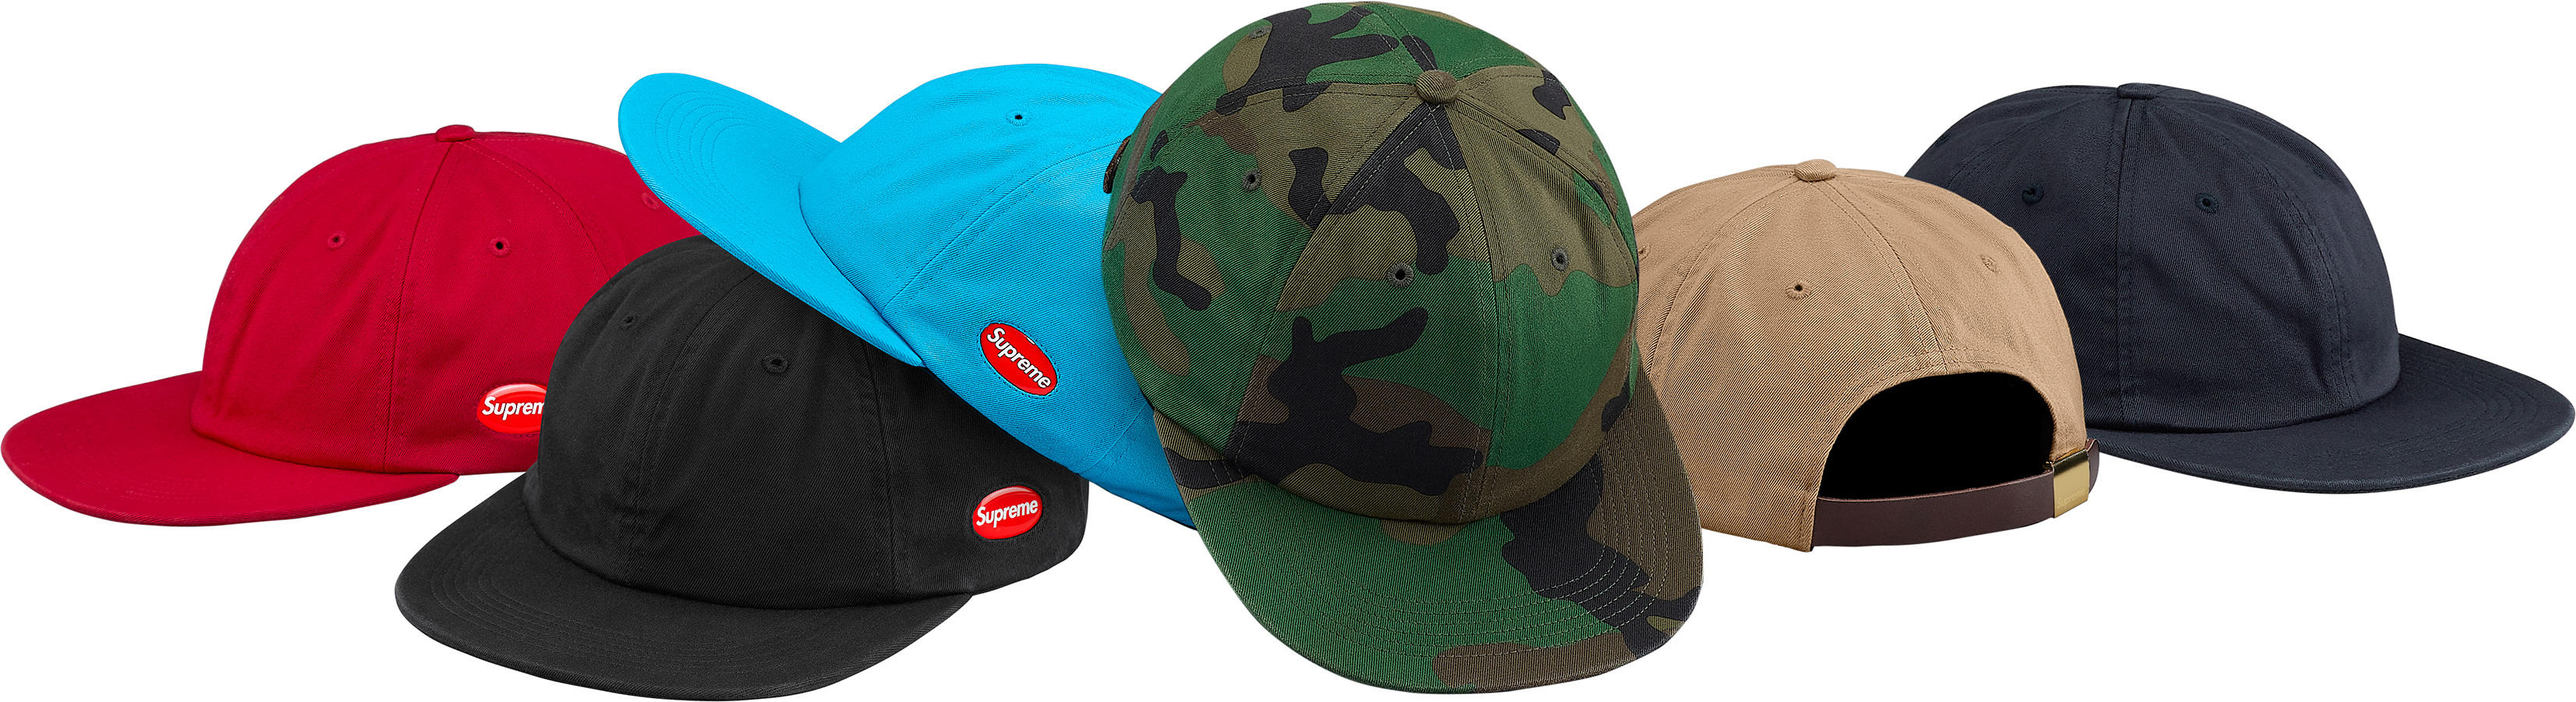 supreme-18aw-fall-winter-window-6-panel